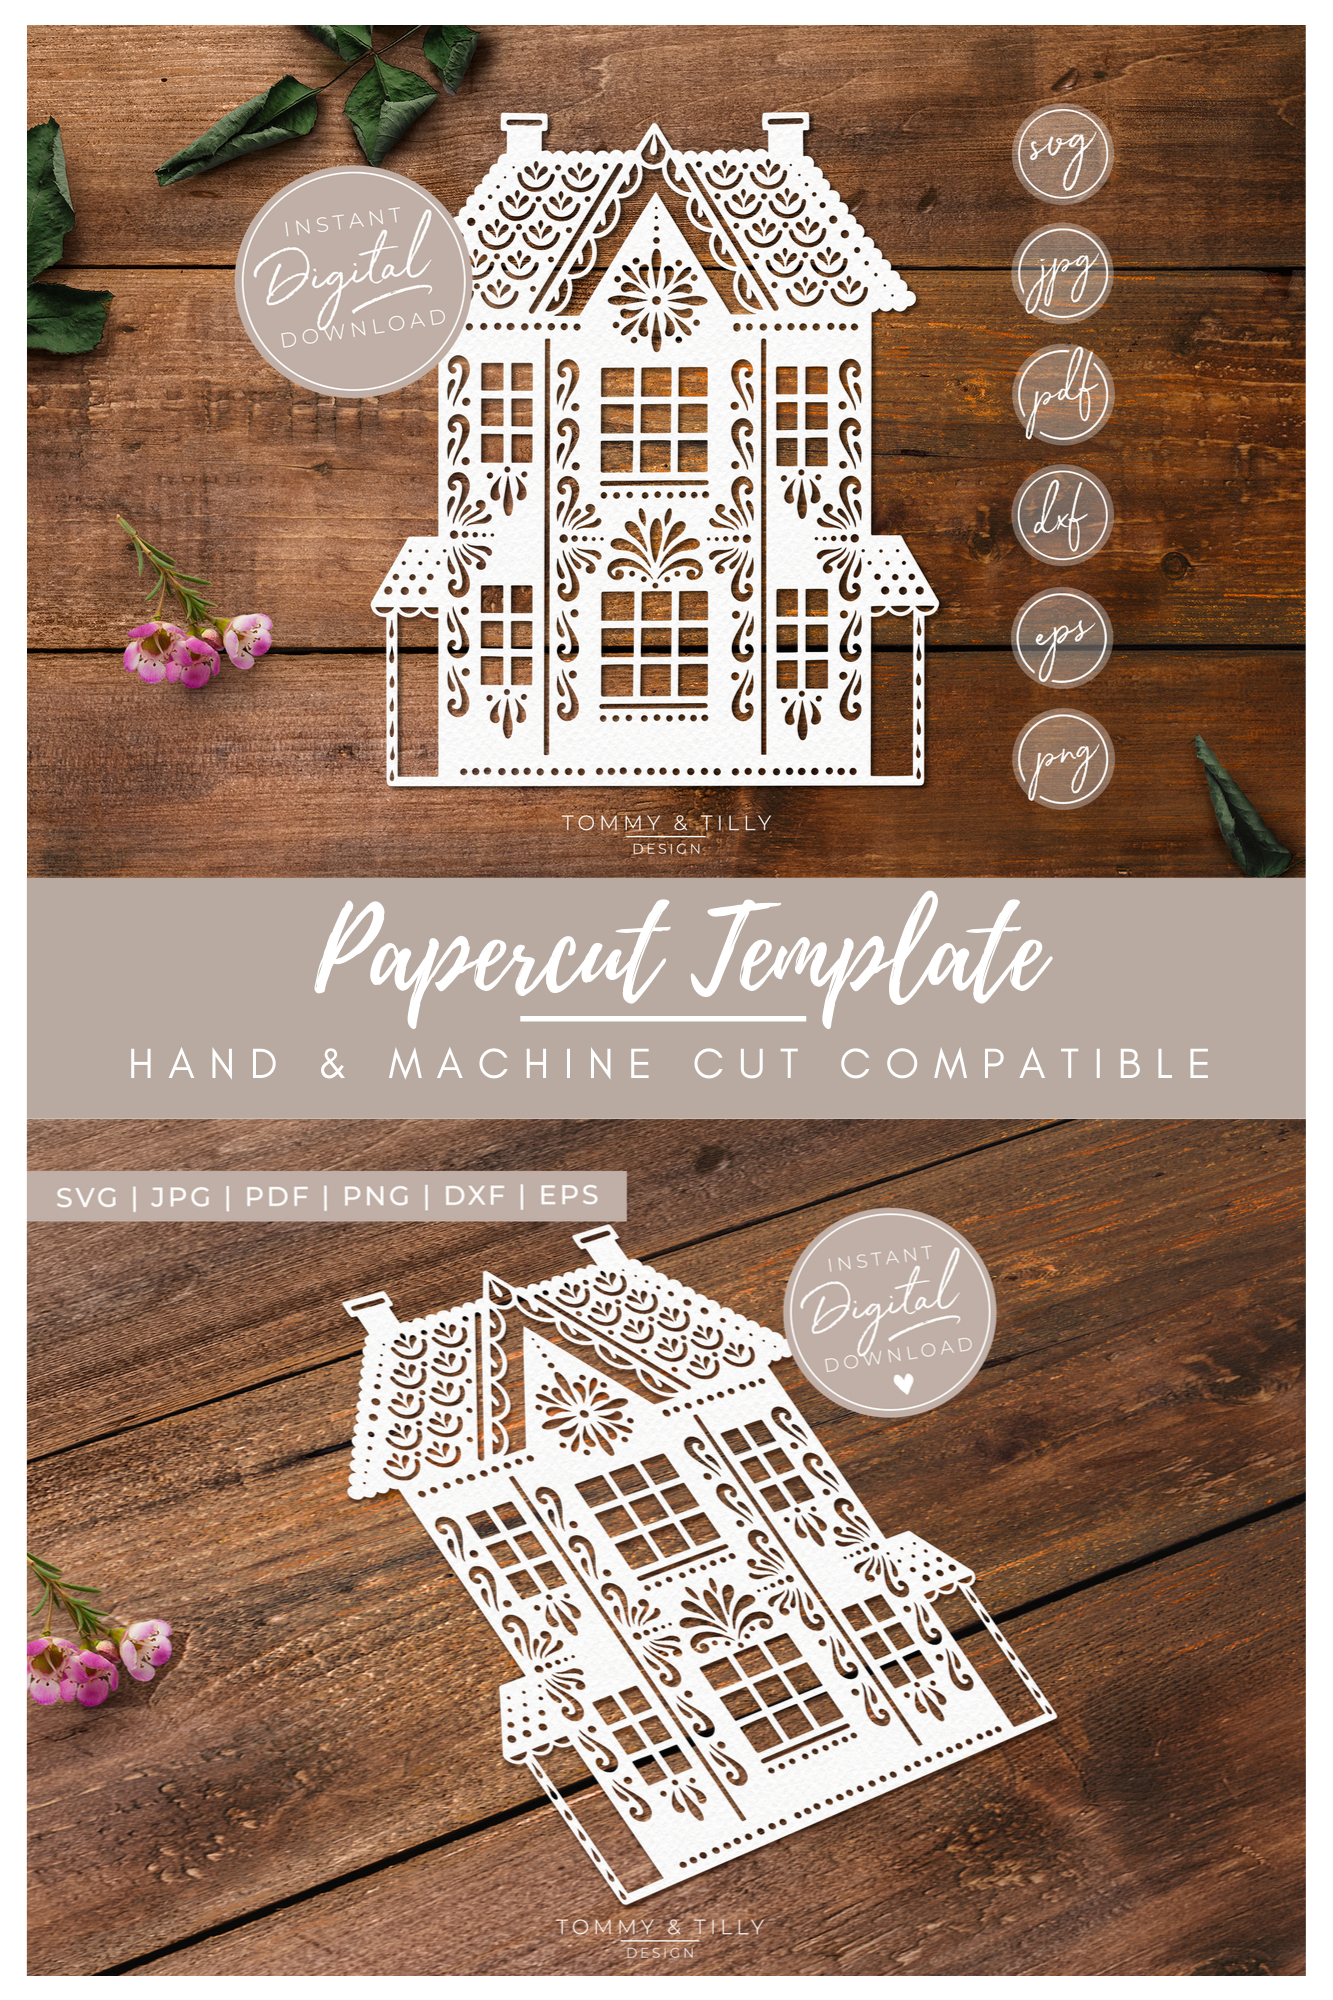 Intricate House No.1 - SVG EPS DXF PNG PDF JPG Cut File example image 7